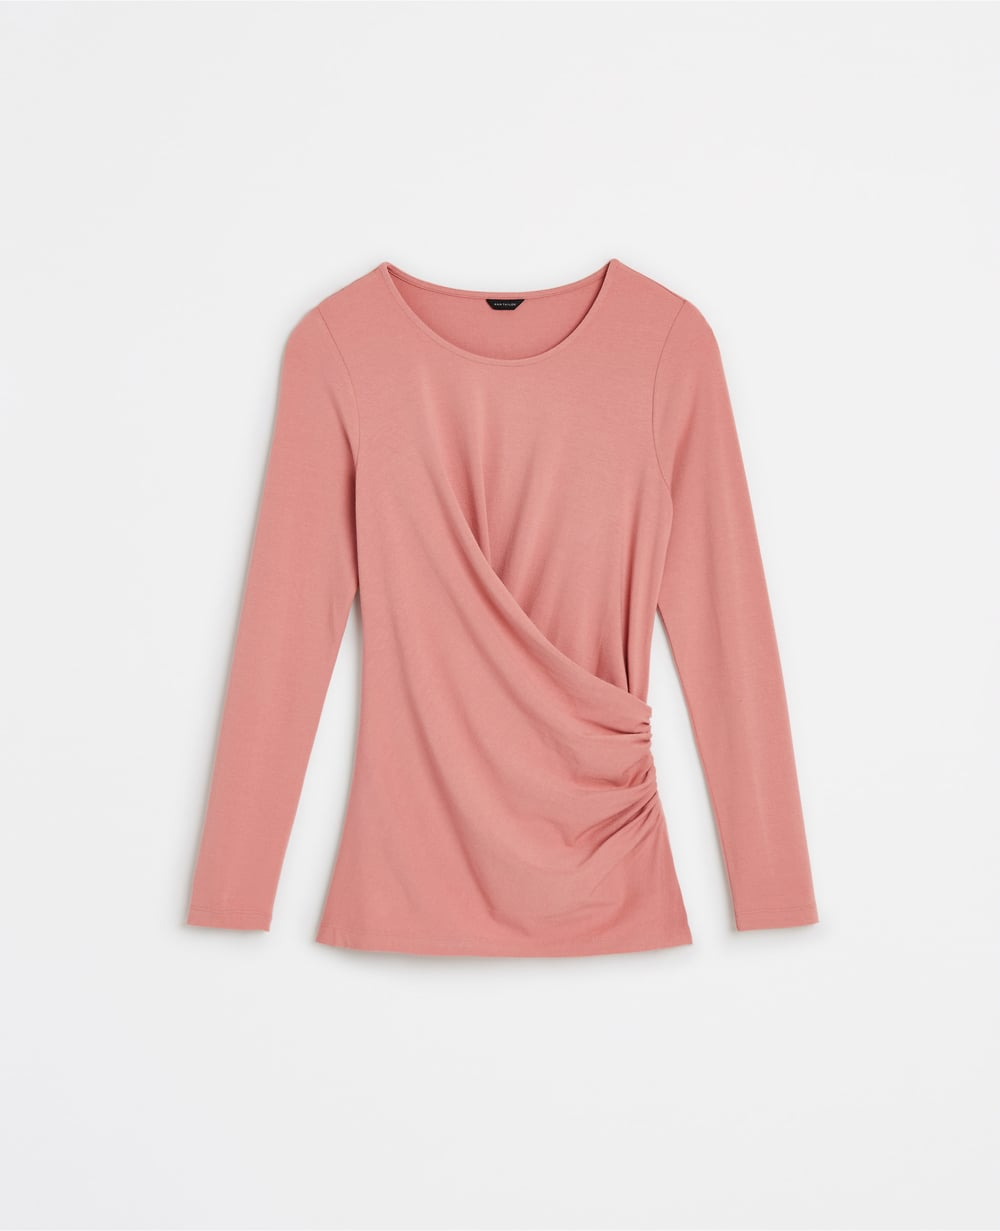 Ruched Long Sleeve Top. Available in multiple colors. Ann Taylor. $59.